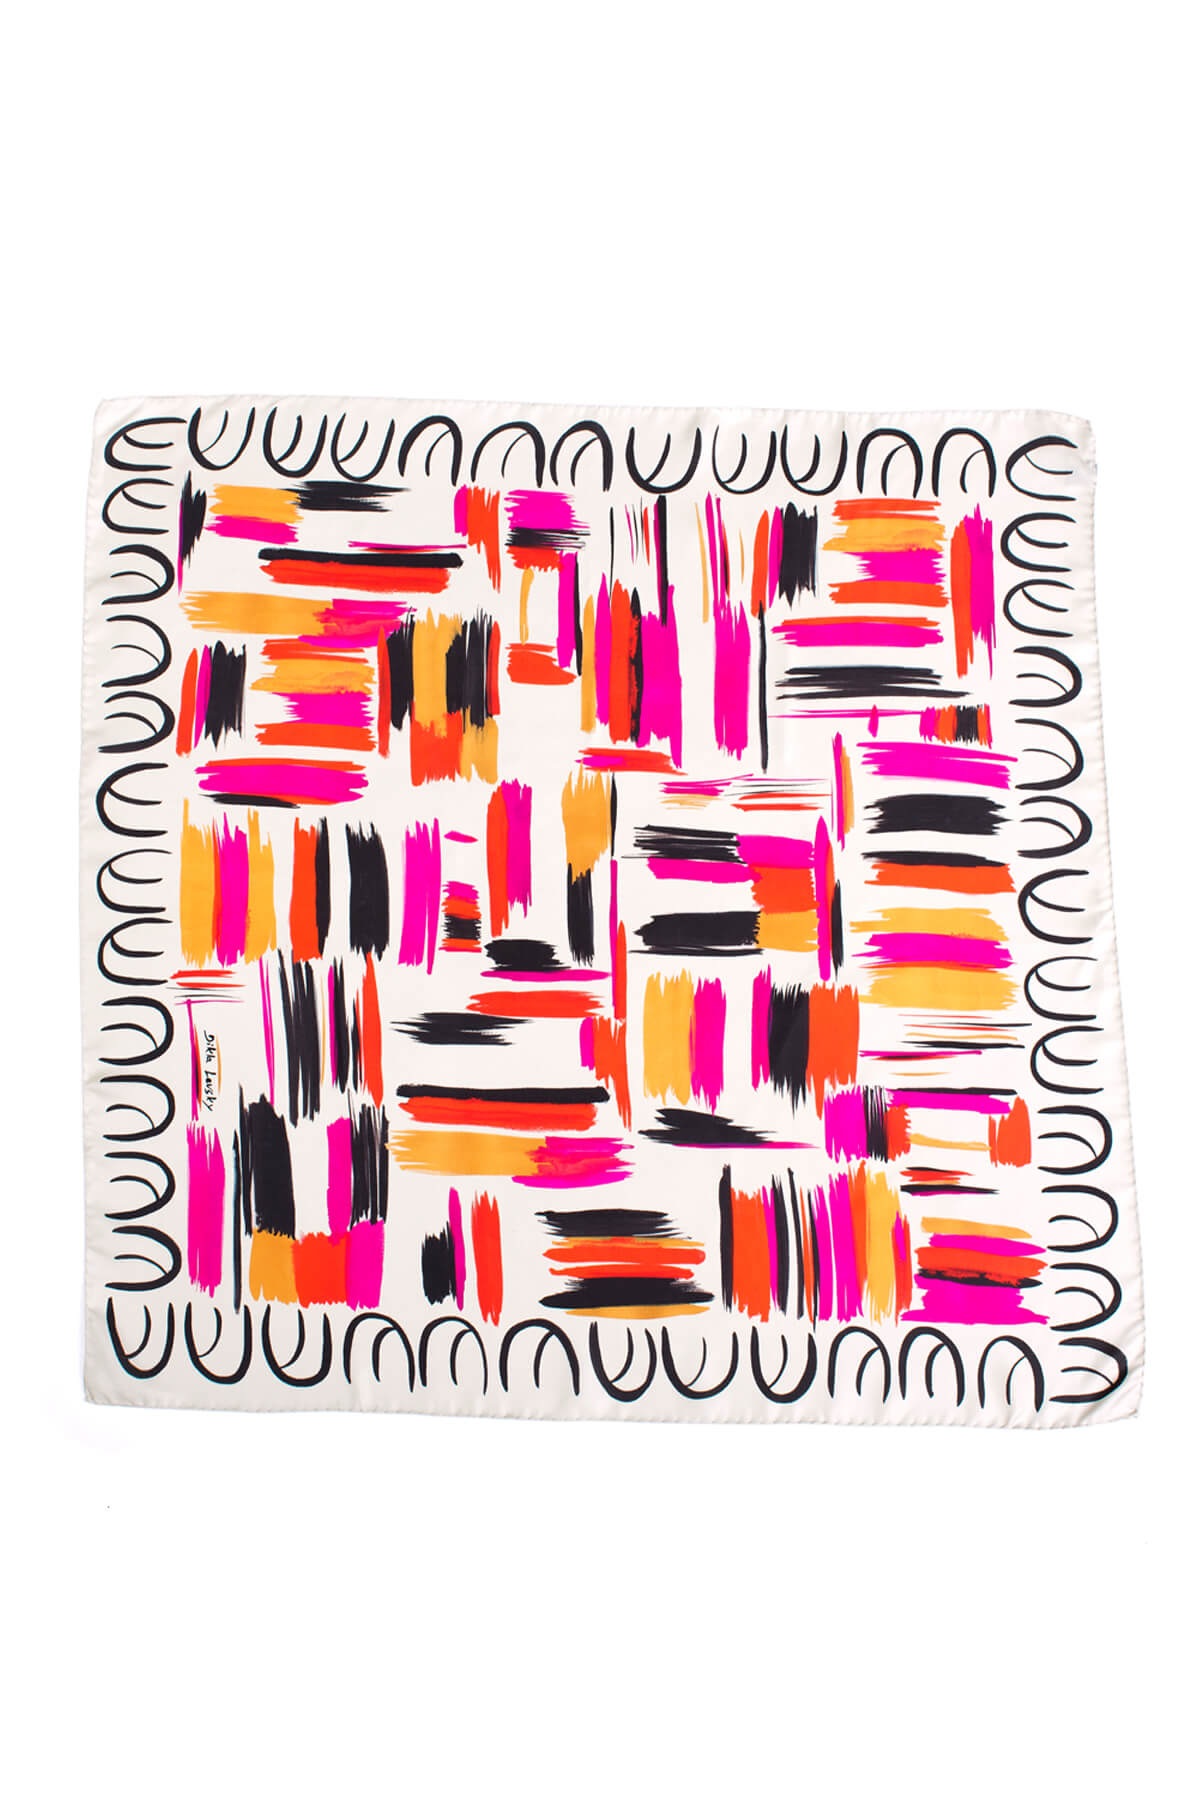 printed scarf, silk scarf. square silk scarf, printed colorful scarf, dikla levsky, luxury scarves, foulard soie, made in italy, ethnic scarf, print and pattern,